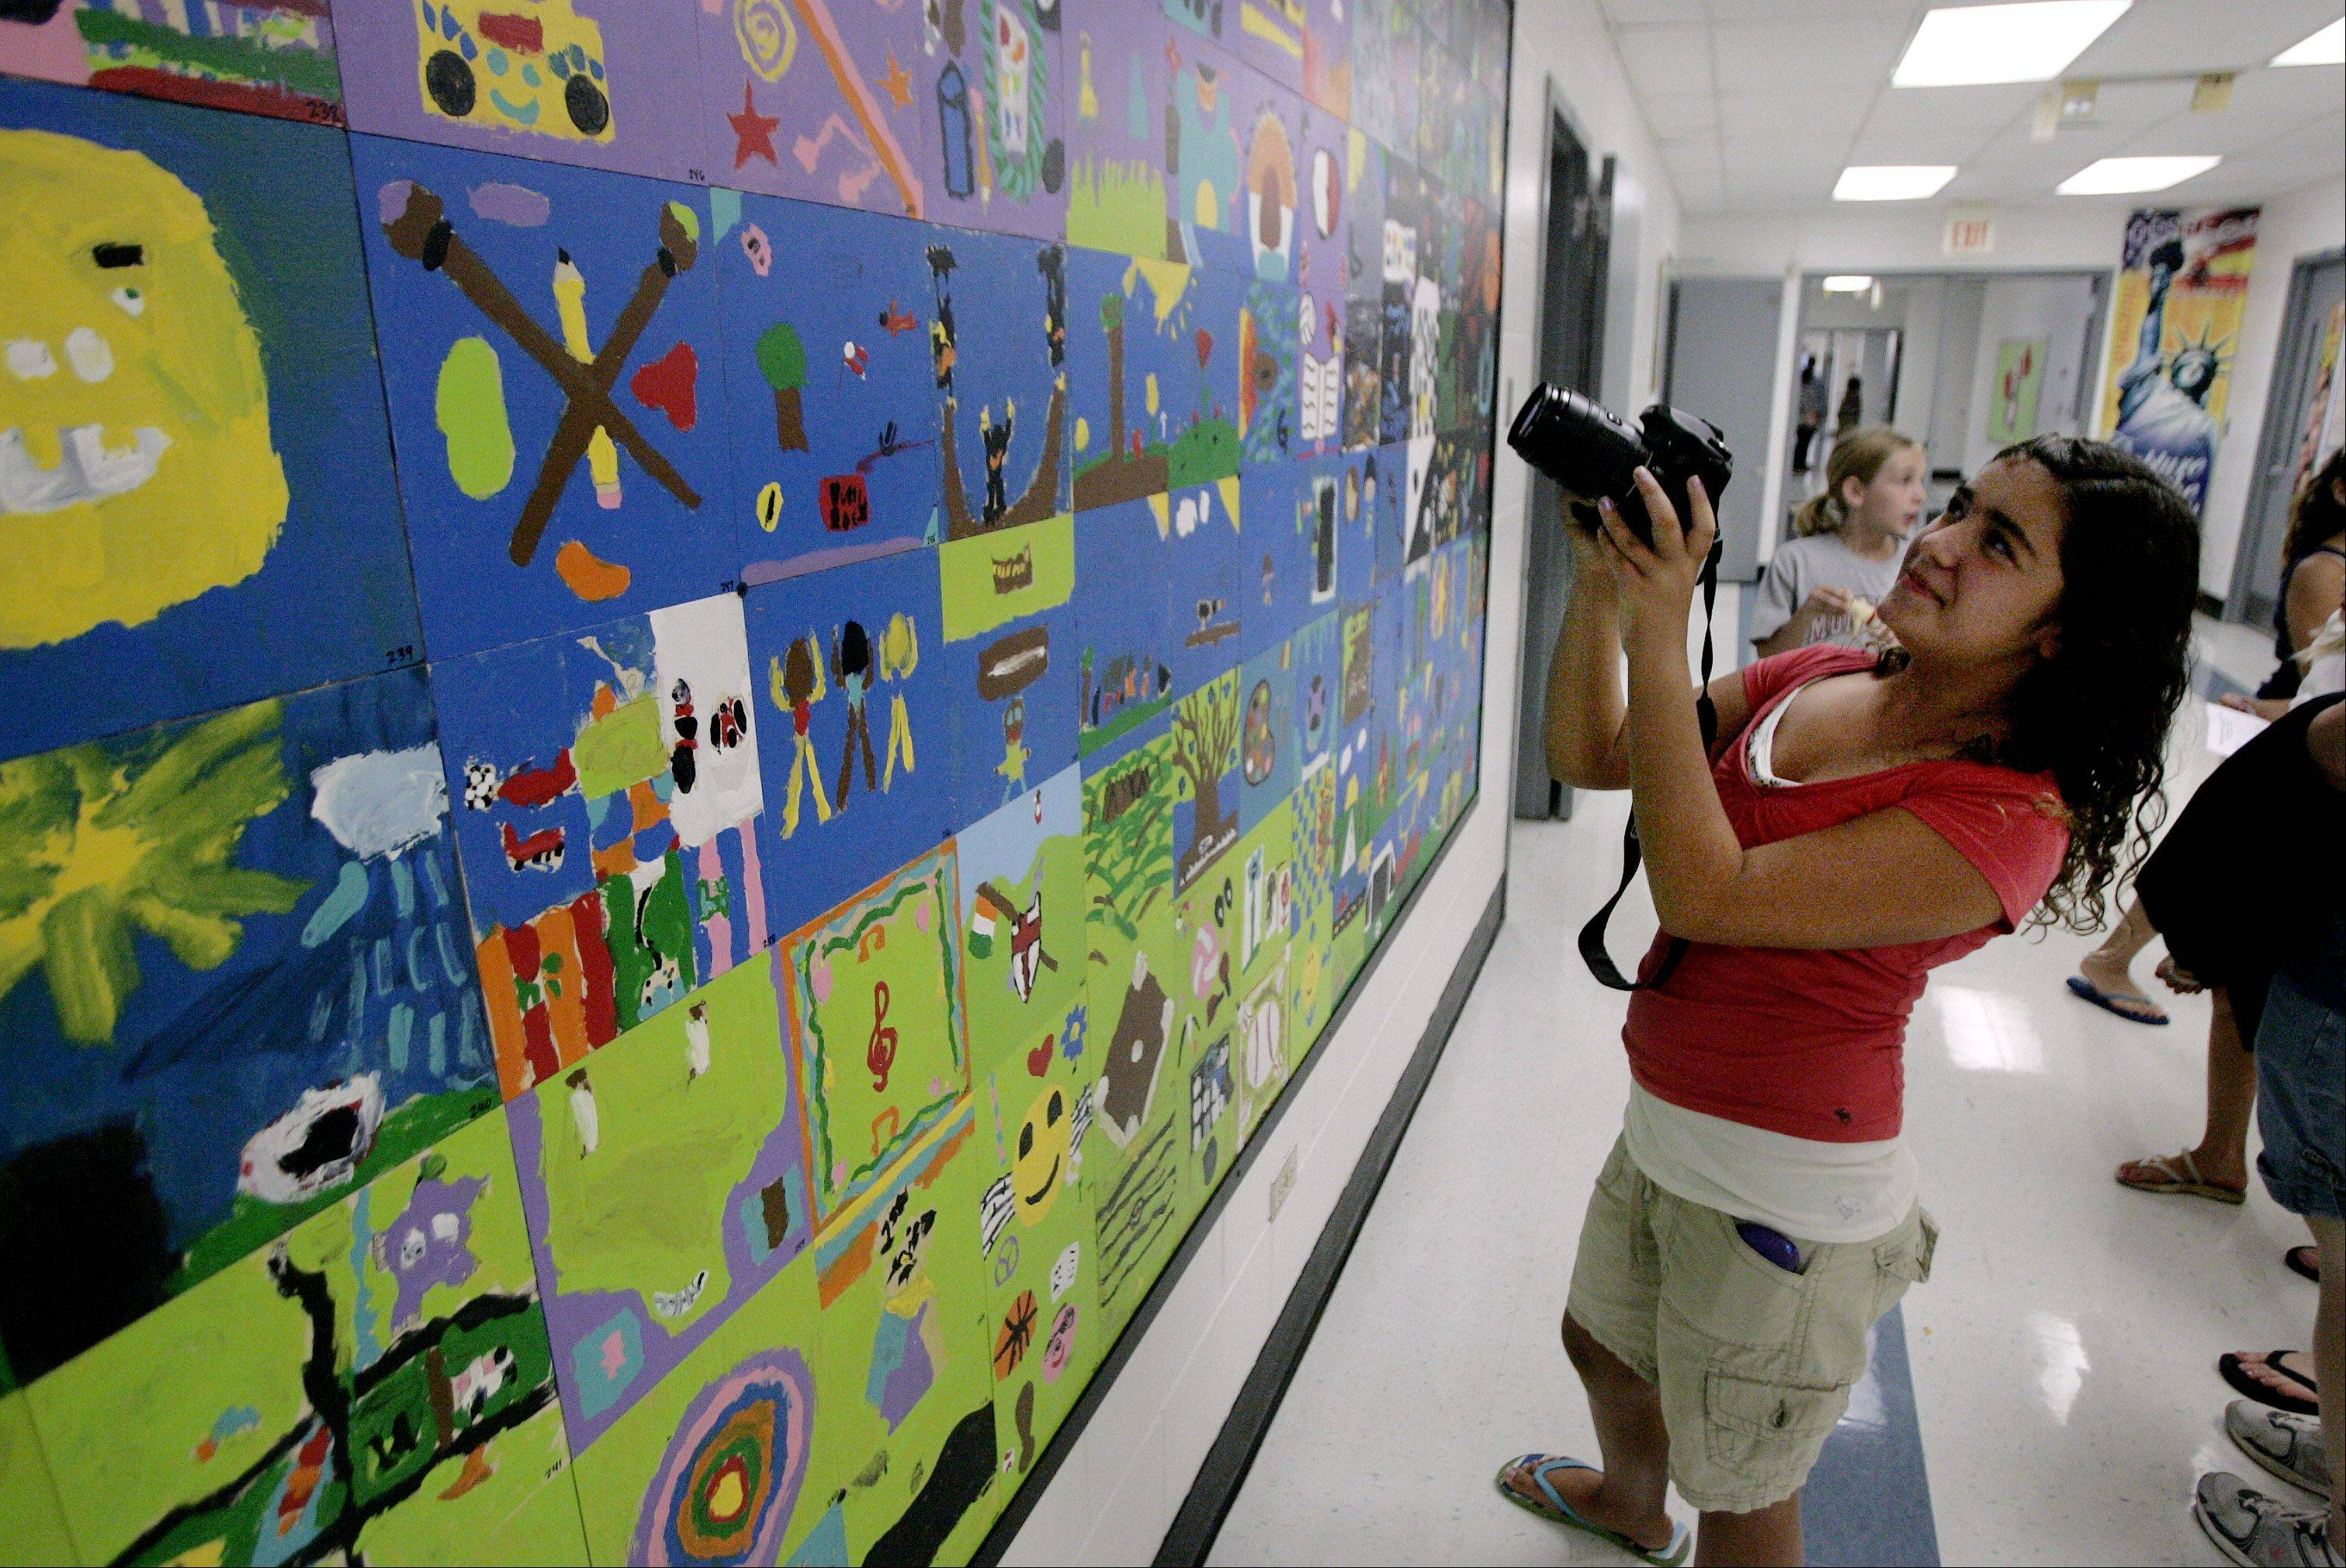 Brianna Dufault, 11, takes a picture of the tile she created in the mural during a back-to-school open house Sunday at Mechanics Grove School in Mundelein. This year, the school will combine Lincoln and Mechanics Grove schools and become a third- through fifth-grade building.